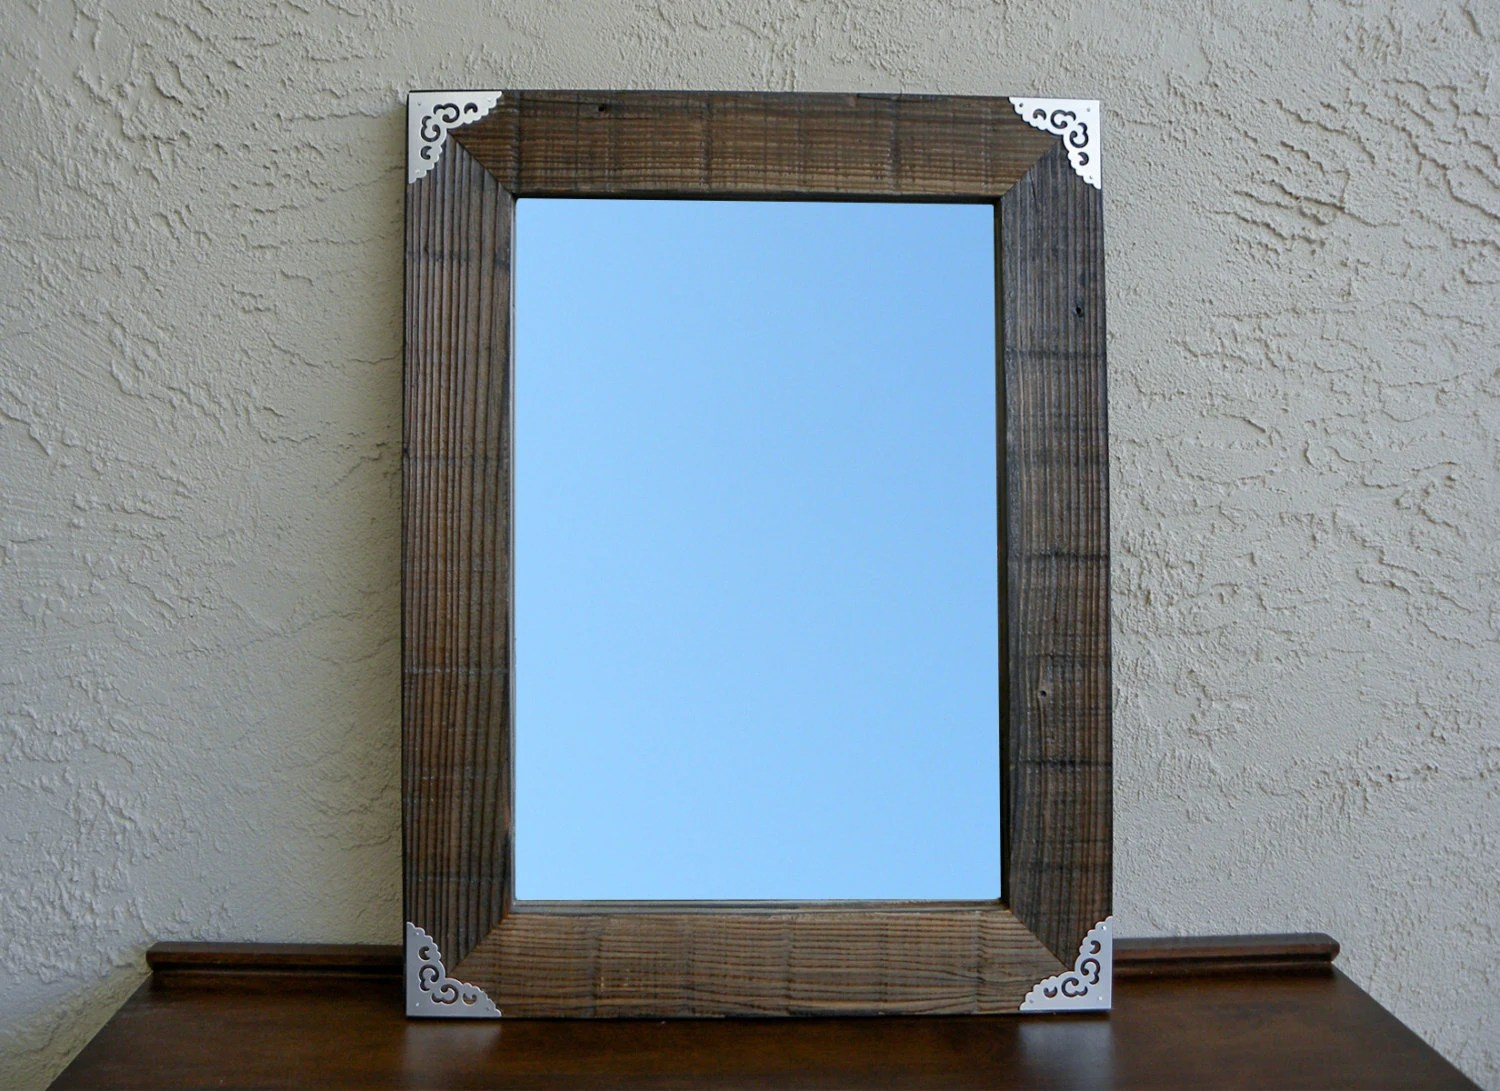 Reclaimed Wood Mirror With Metal Silver Corners. Rustic Decor